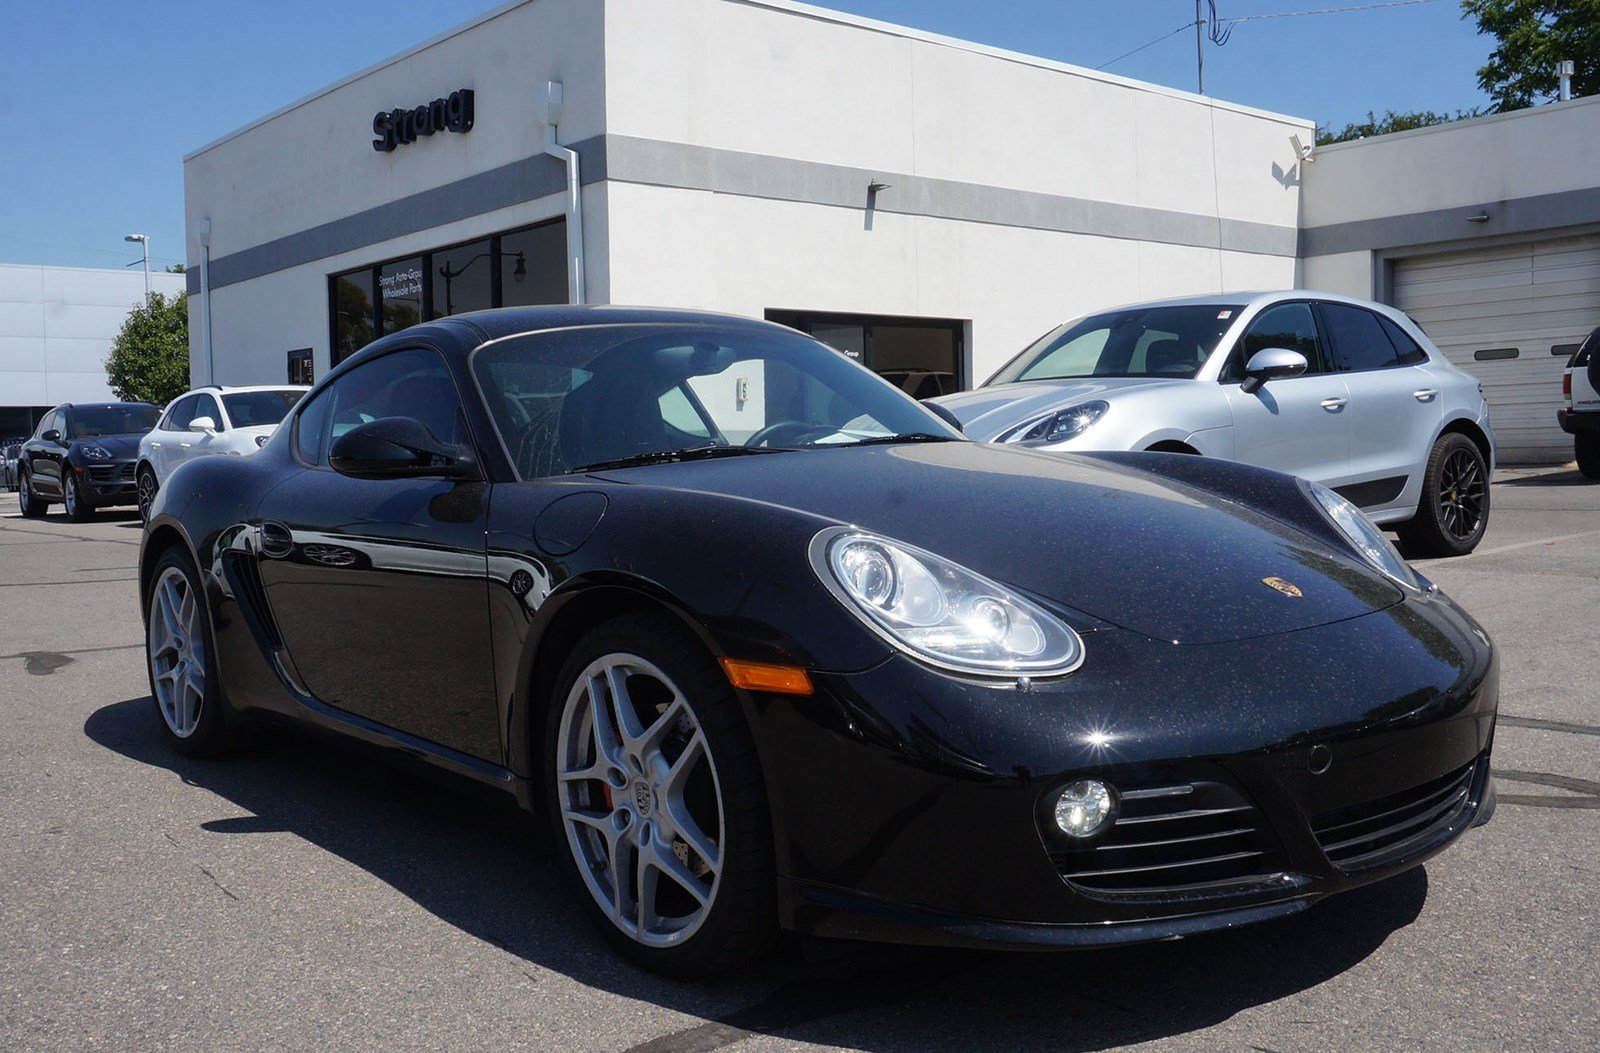 Certified Pre-Owned 2011 Porsche Cayman S S 2dr Car in Salt Lake ...